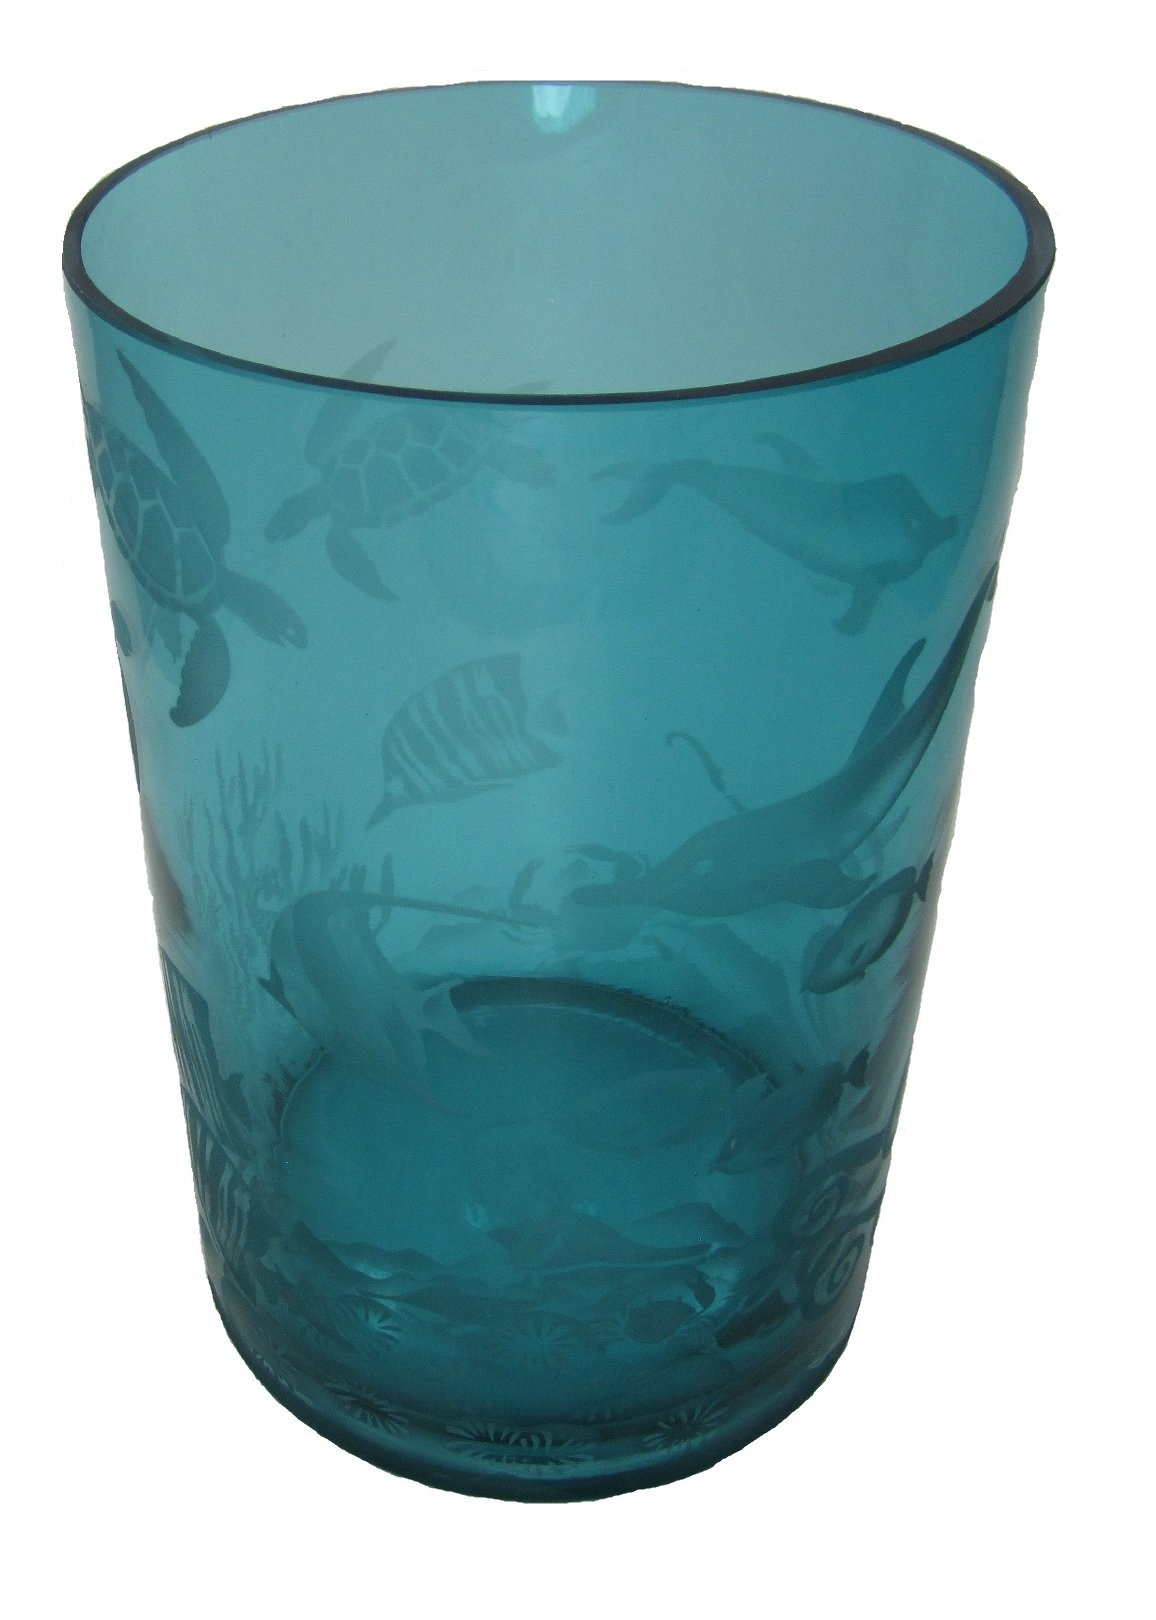 IncisoArt Hand Etched Glass Vase Permanently Sandblasted (Sand Carved) Handmade Engraved Tabletop Centerpiece (Round 8 Inch x 5 Inch, Teal Aquatic Animal Ocean Sea Life Combo)